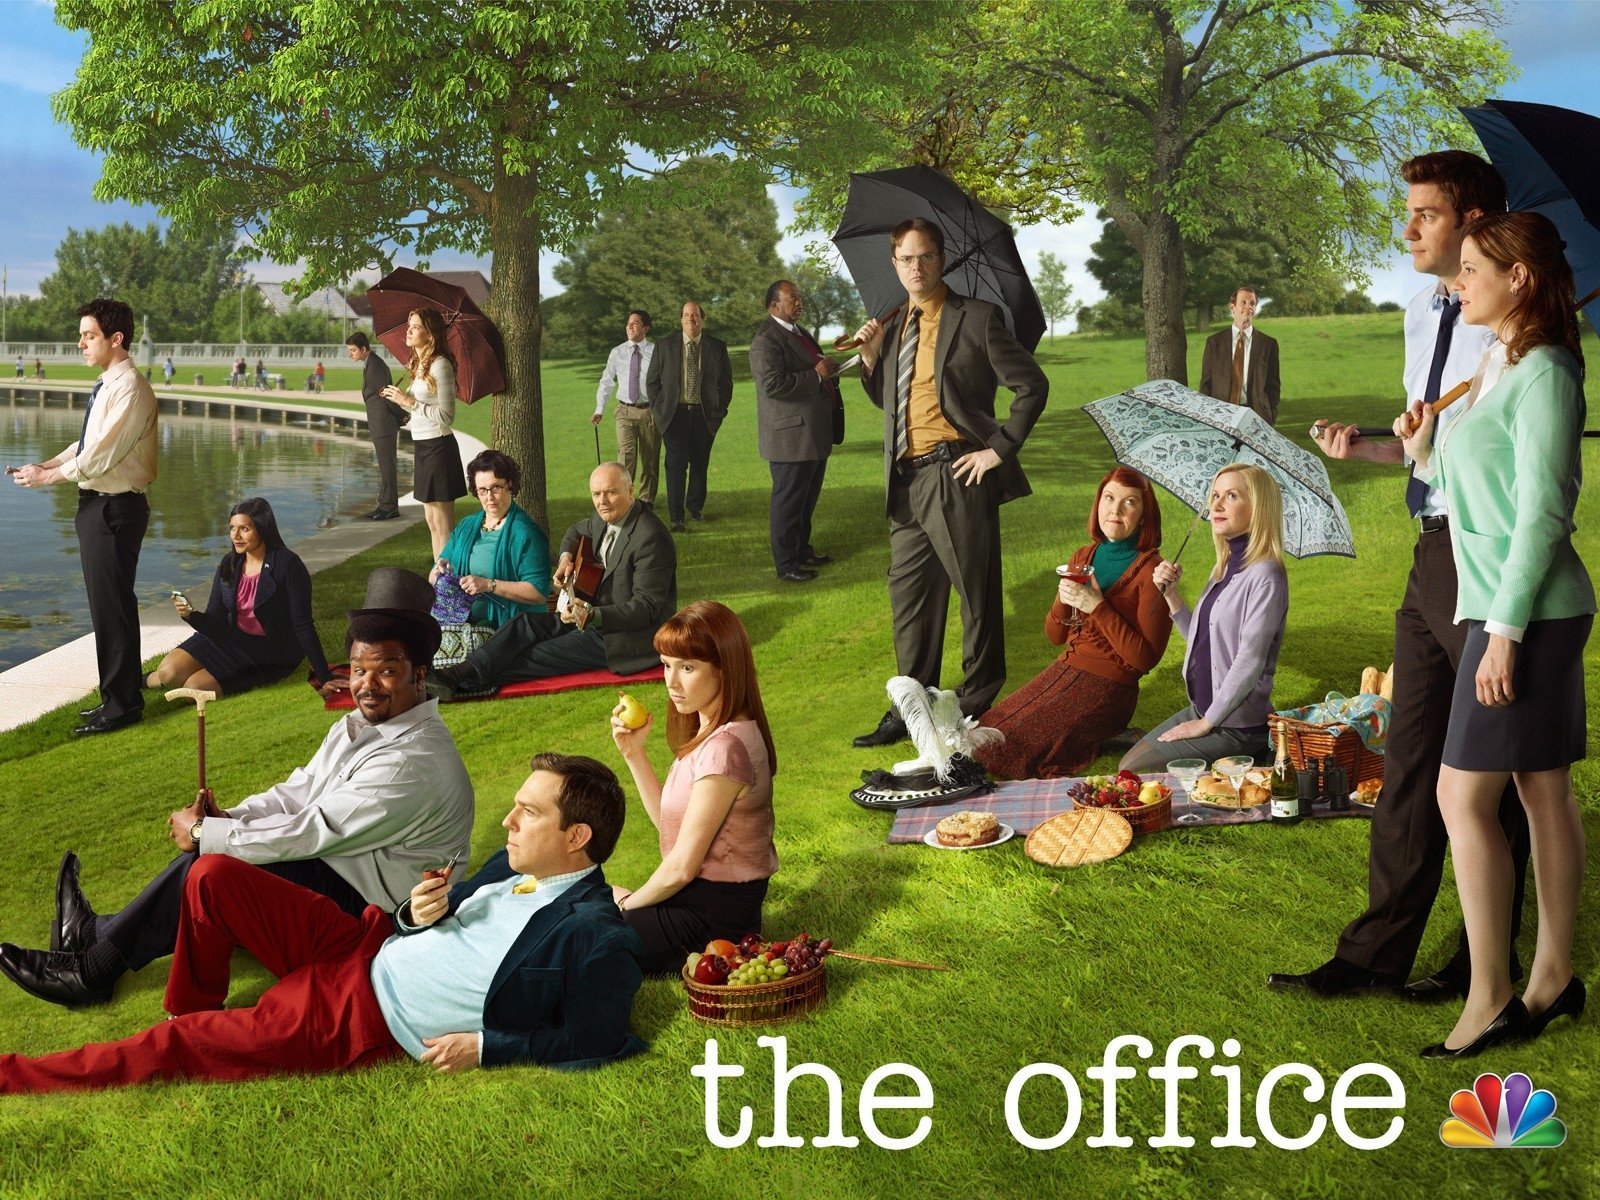 hd wallpaper background id420104 1600x1200 tv show the office